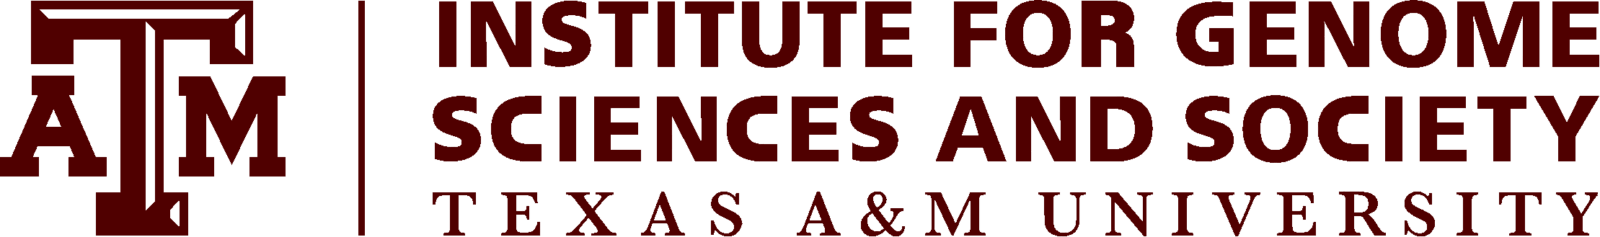 Texas A&M Institute for Genome Sciences and Society